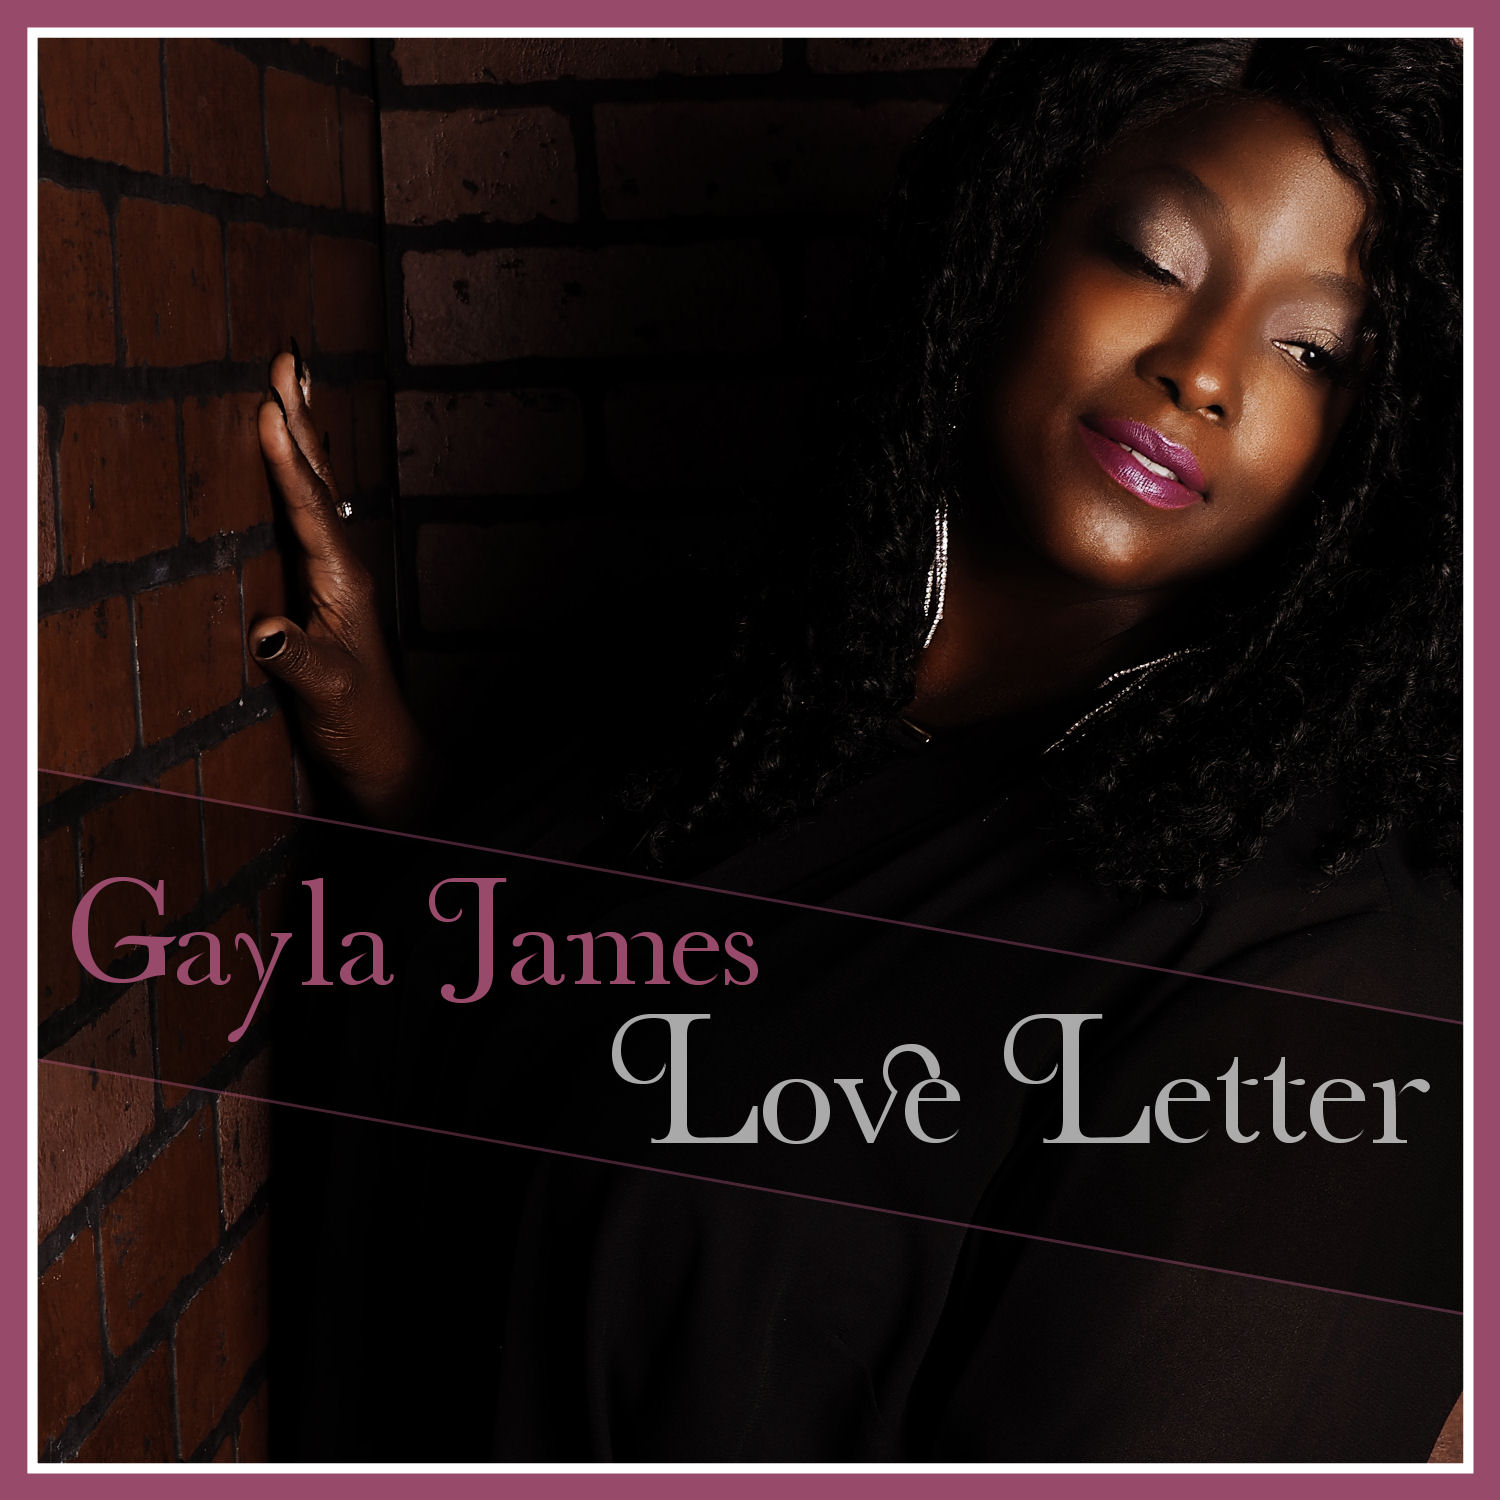 Gayla James Touches Hearts